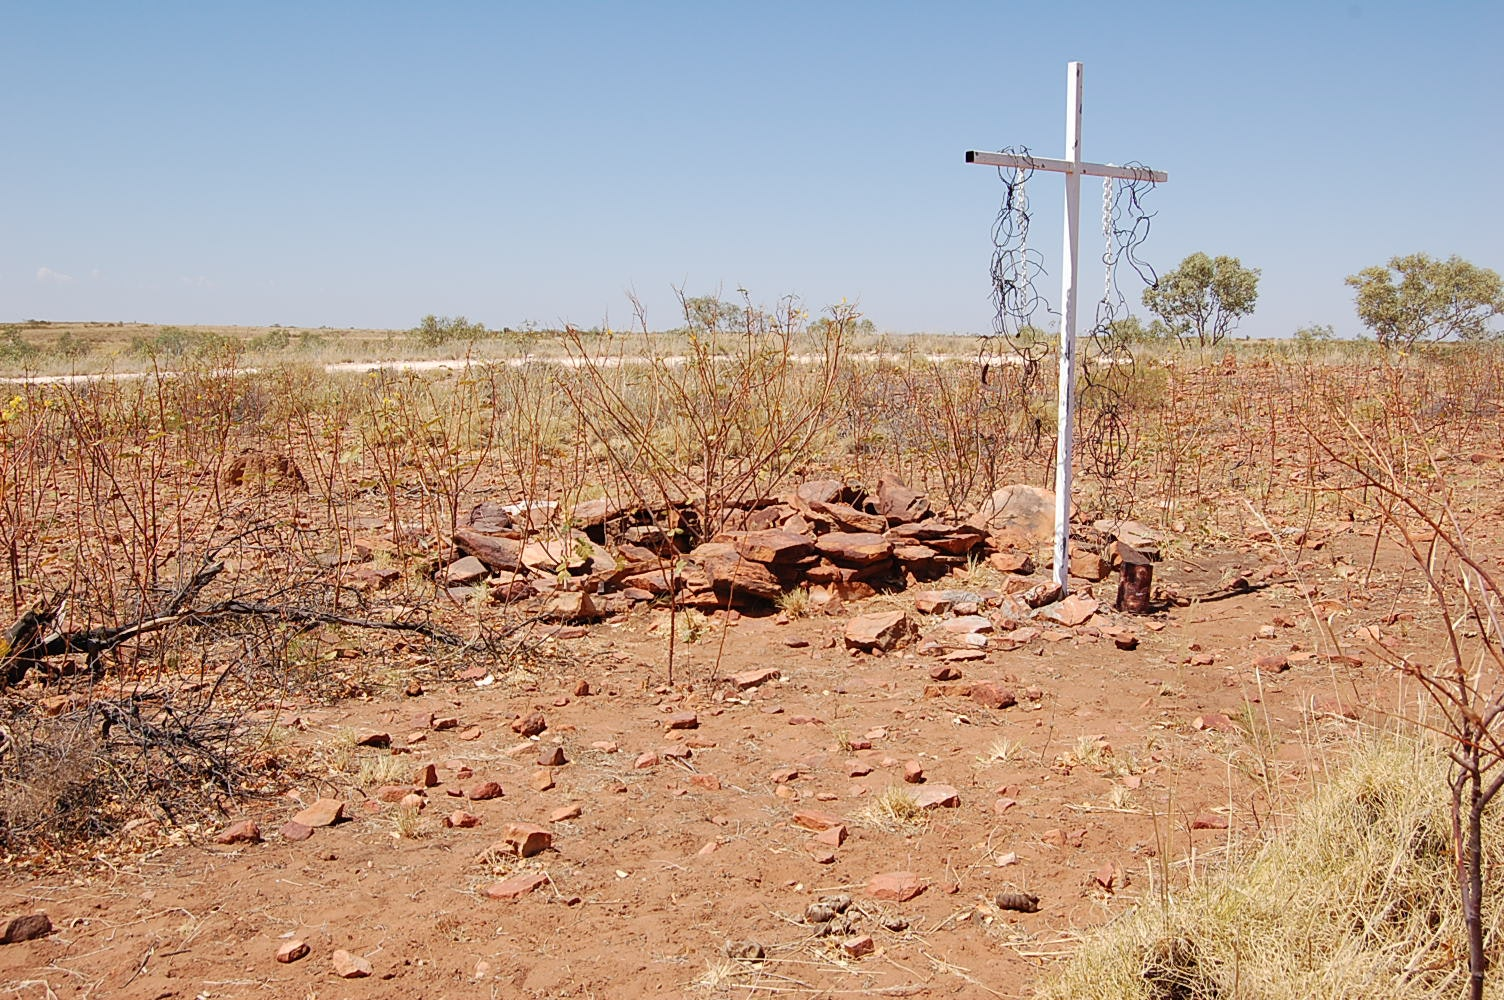 Oral testimony of an Aboriginal massacre now supported by scientific evidence